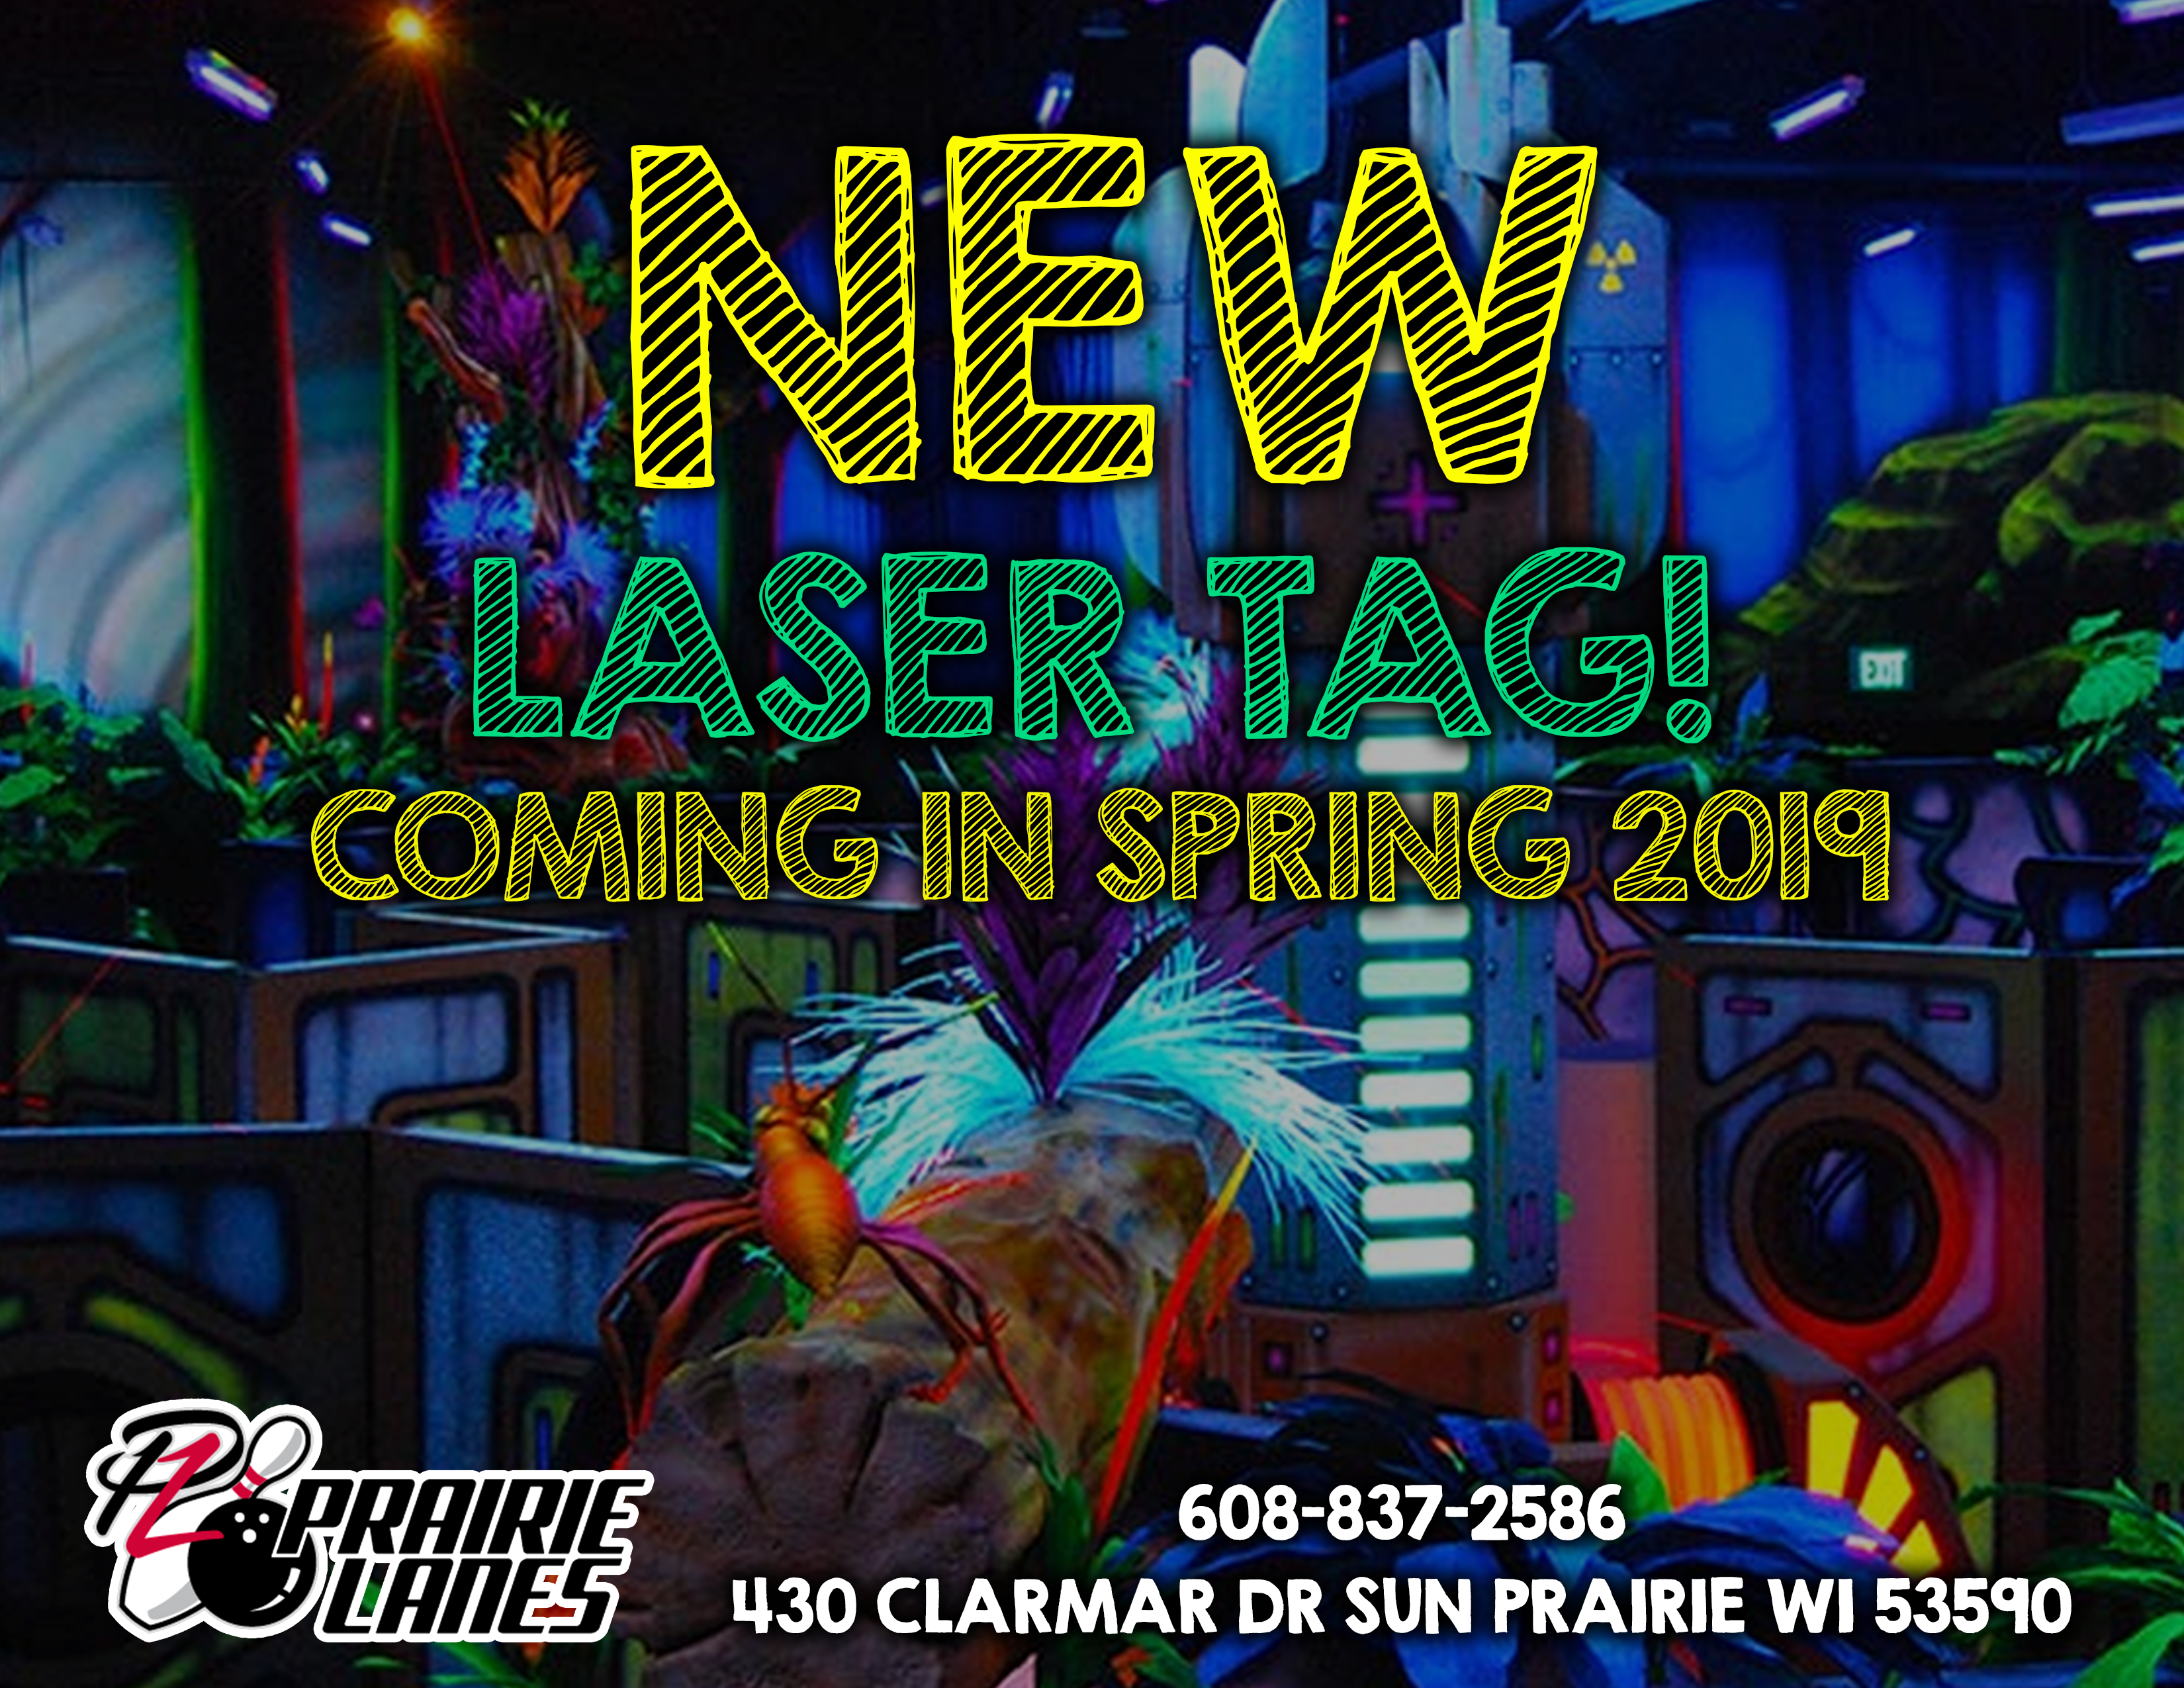 New laser tag coming in spring of 2019!